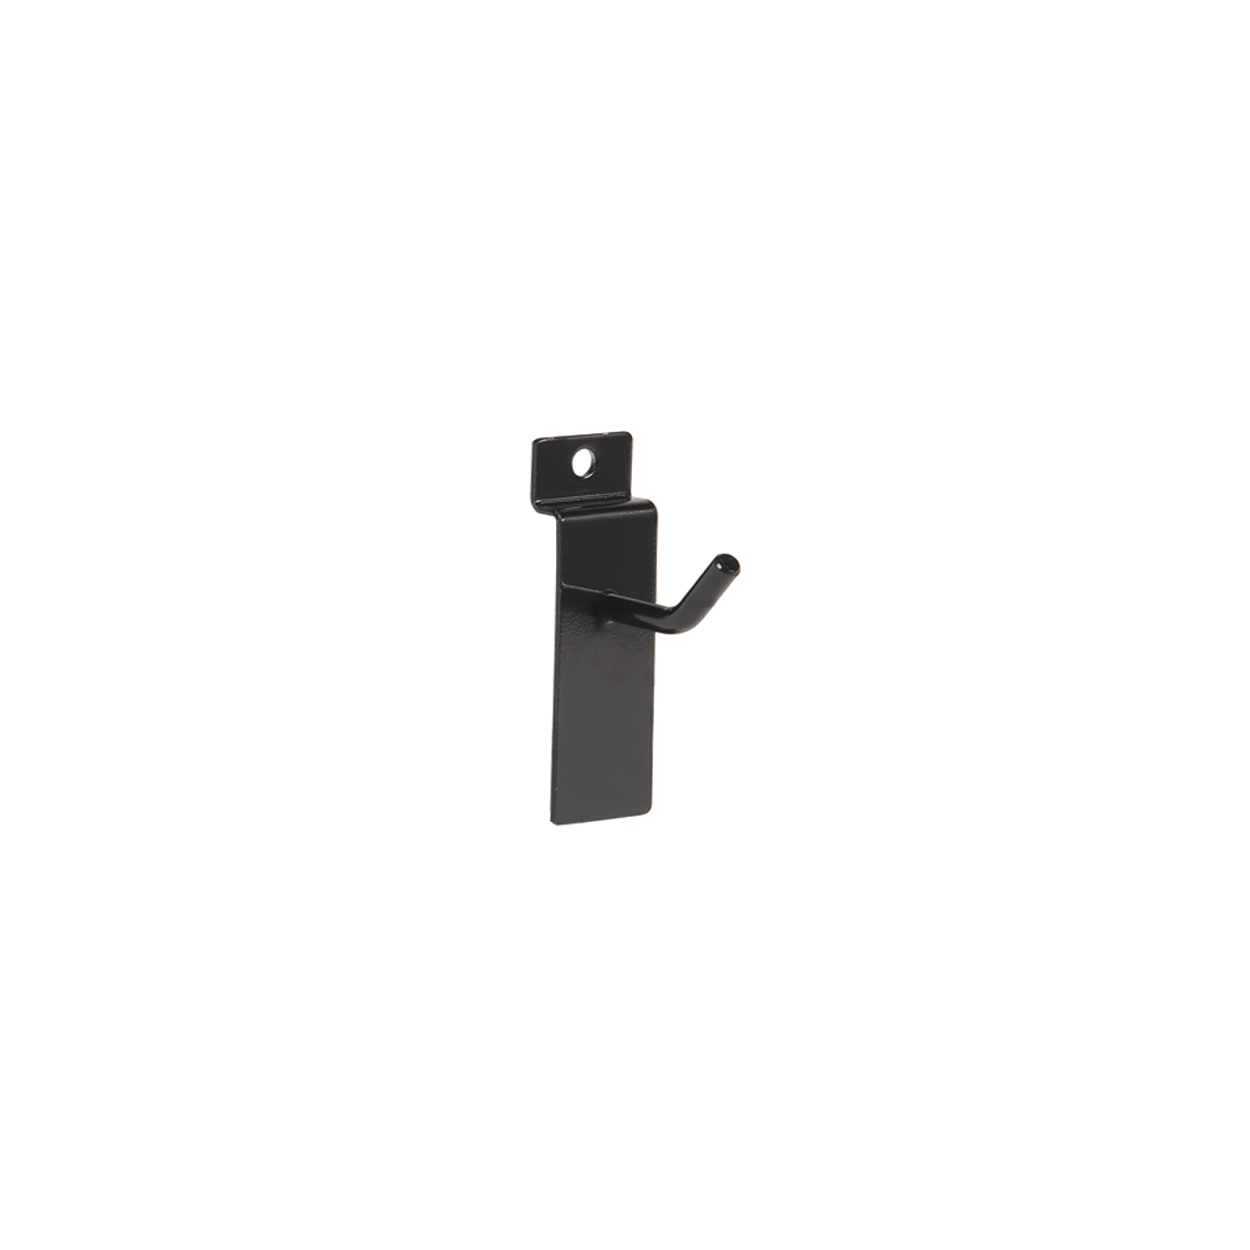 Small Black Counter Top Panel Hook. Dim 50L x 5.8mm Diameter